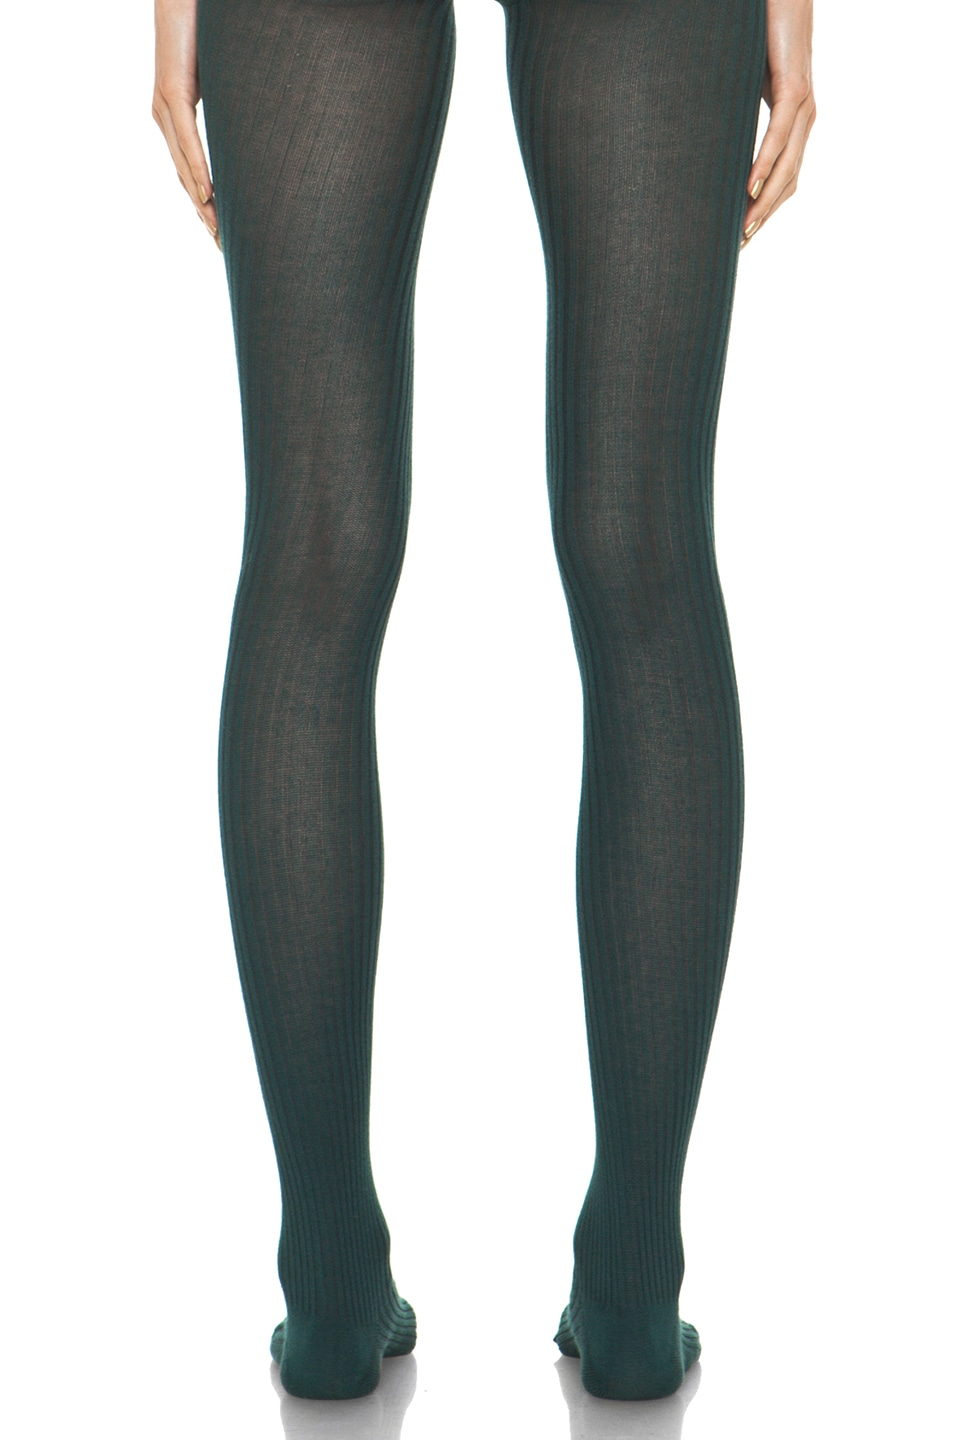 Image 4 of A.P.C. Collant Tights in Blue Canard